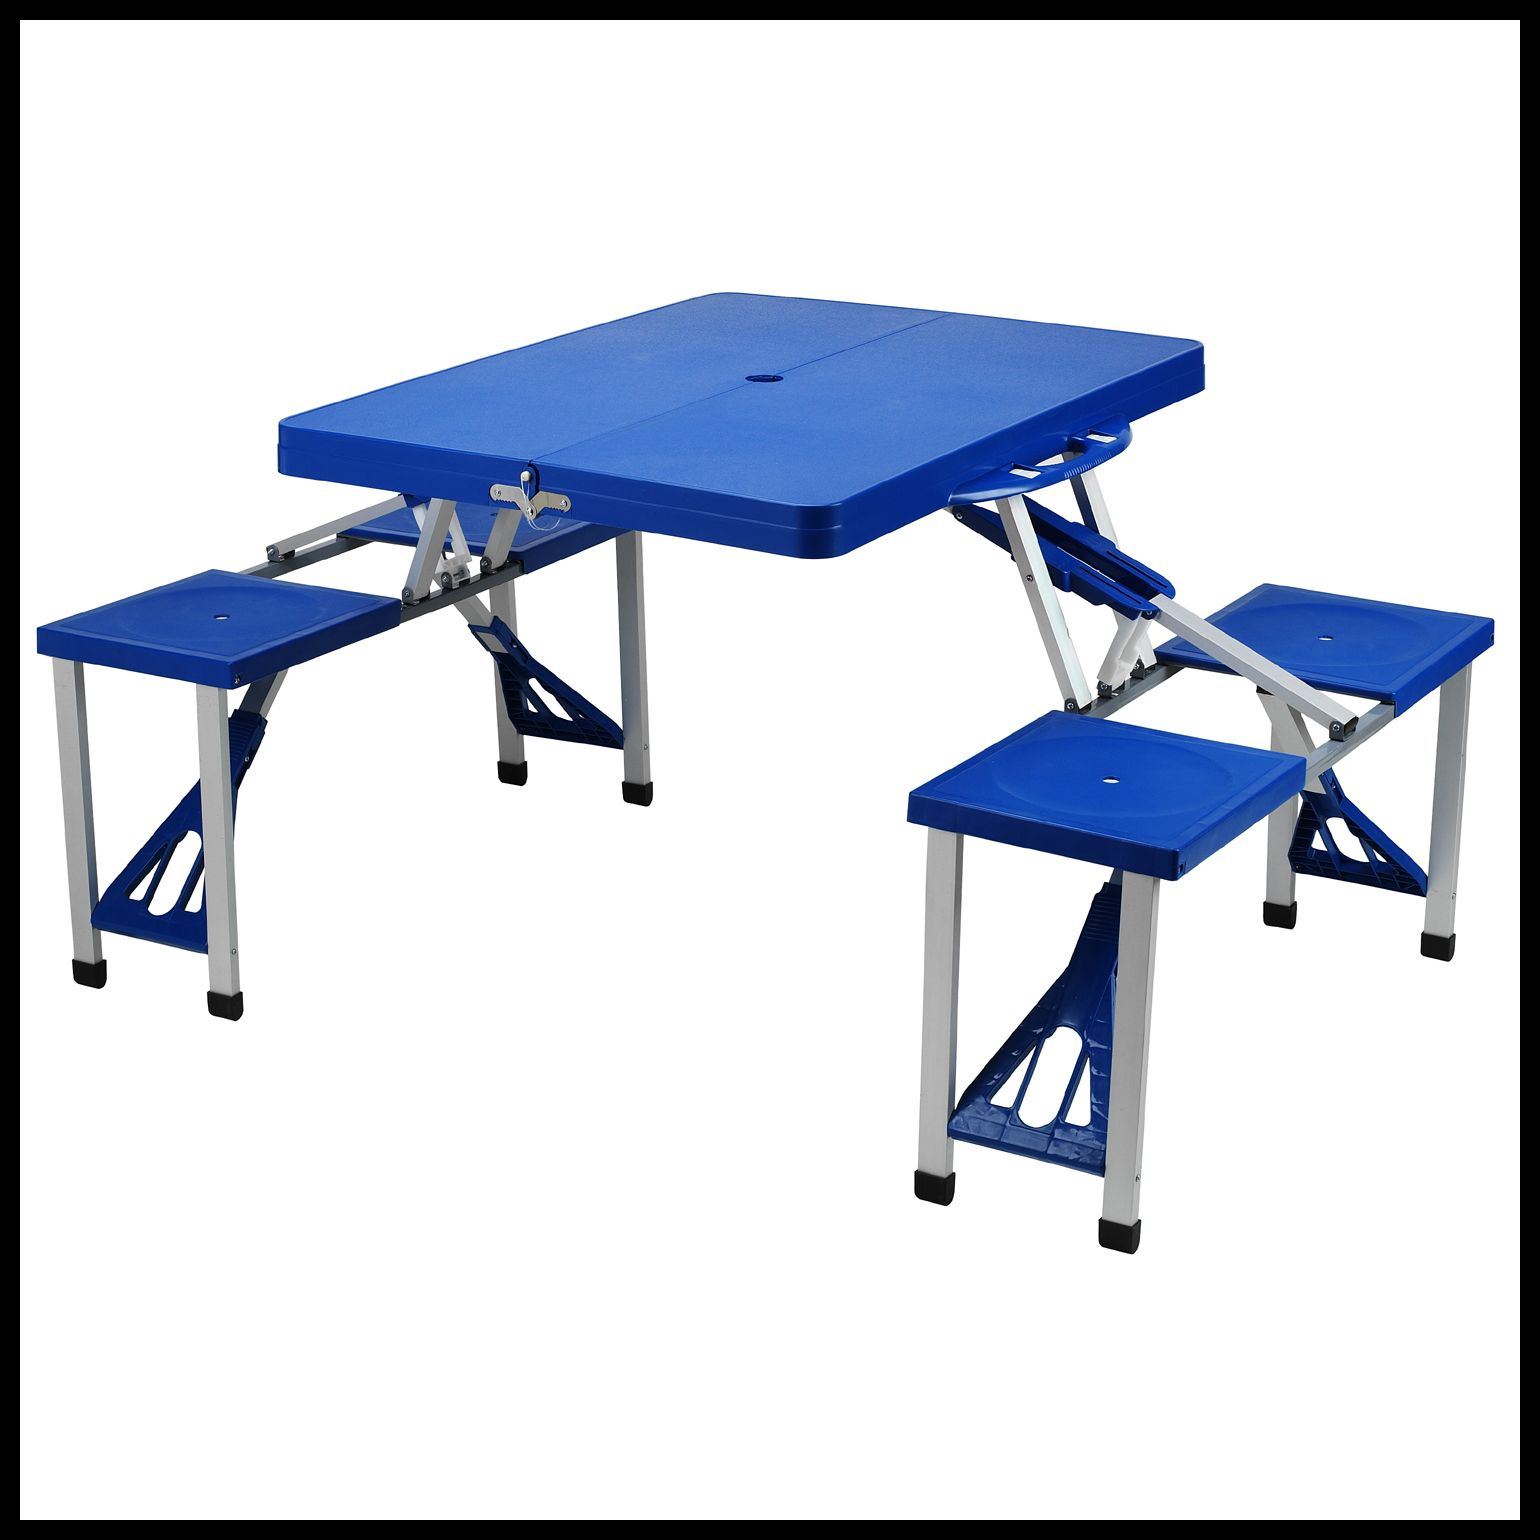 Camping Chairs Table Folding Camping Chairs Check Out This Great Article Campingshowerideas Camping Table Folding Camping Table Plastic Picnic Tables